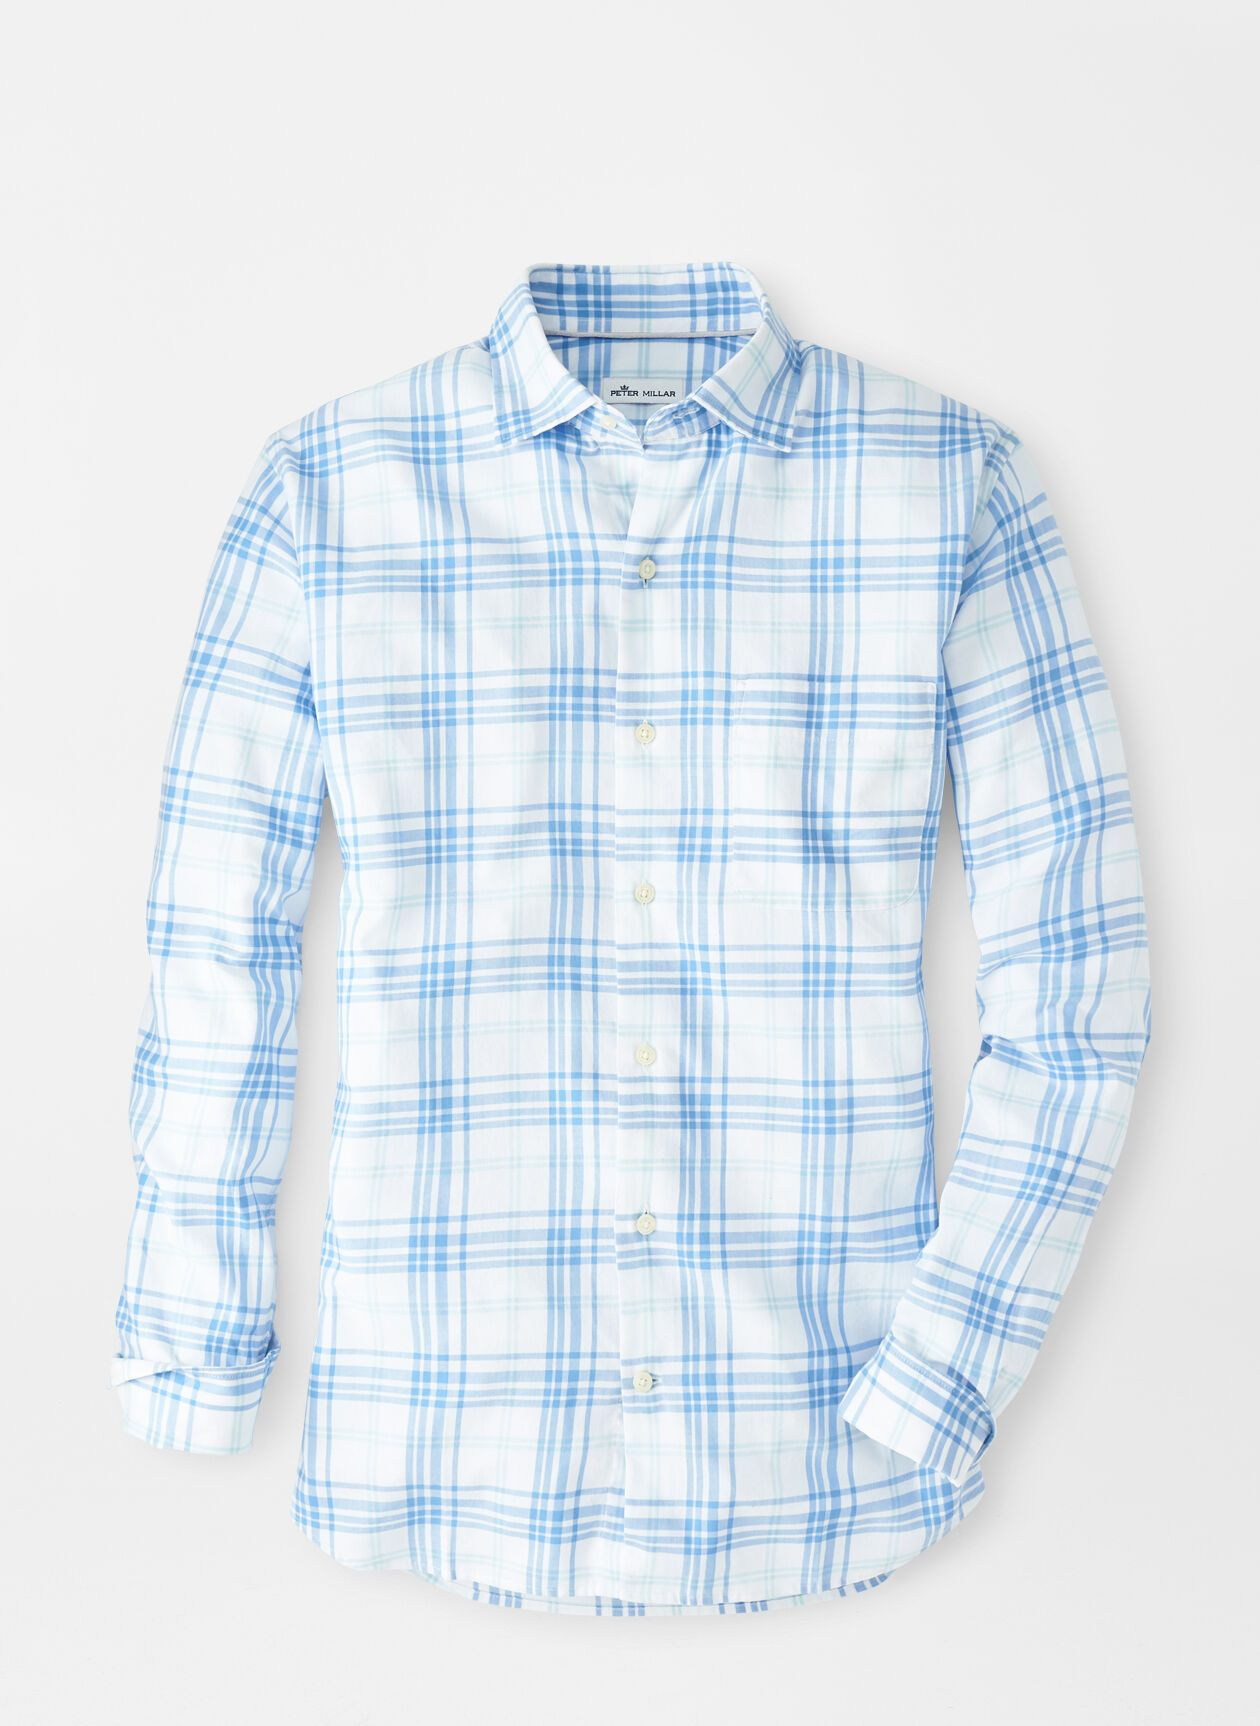 PETER MILLAR Men's Sport Shirt Peter Millar Seawater Cotton Sport Shirt || David's Clothing